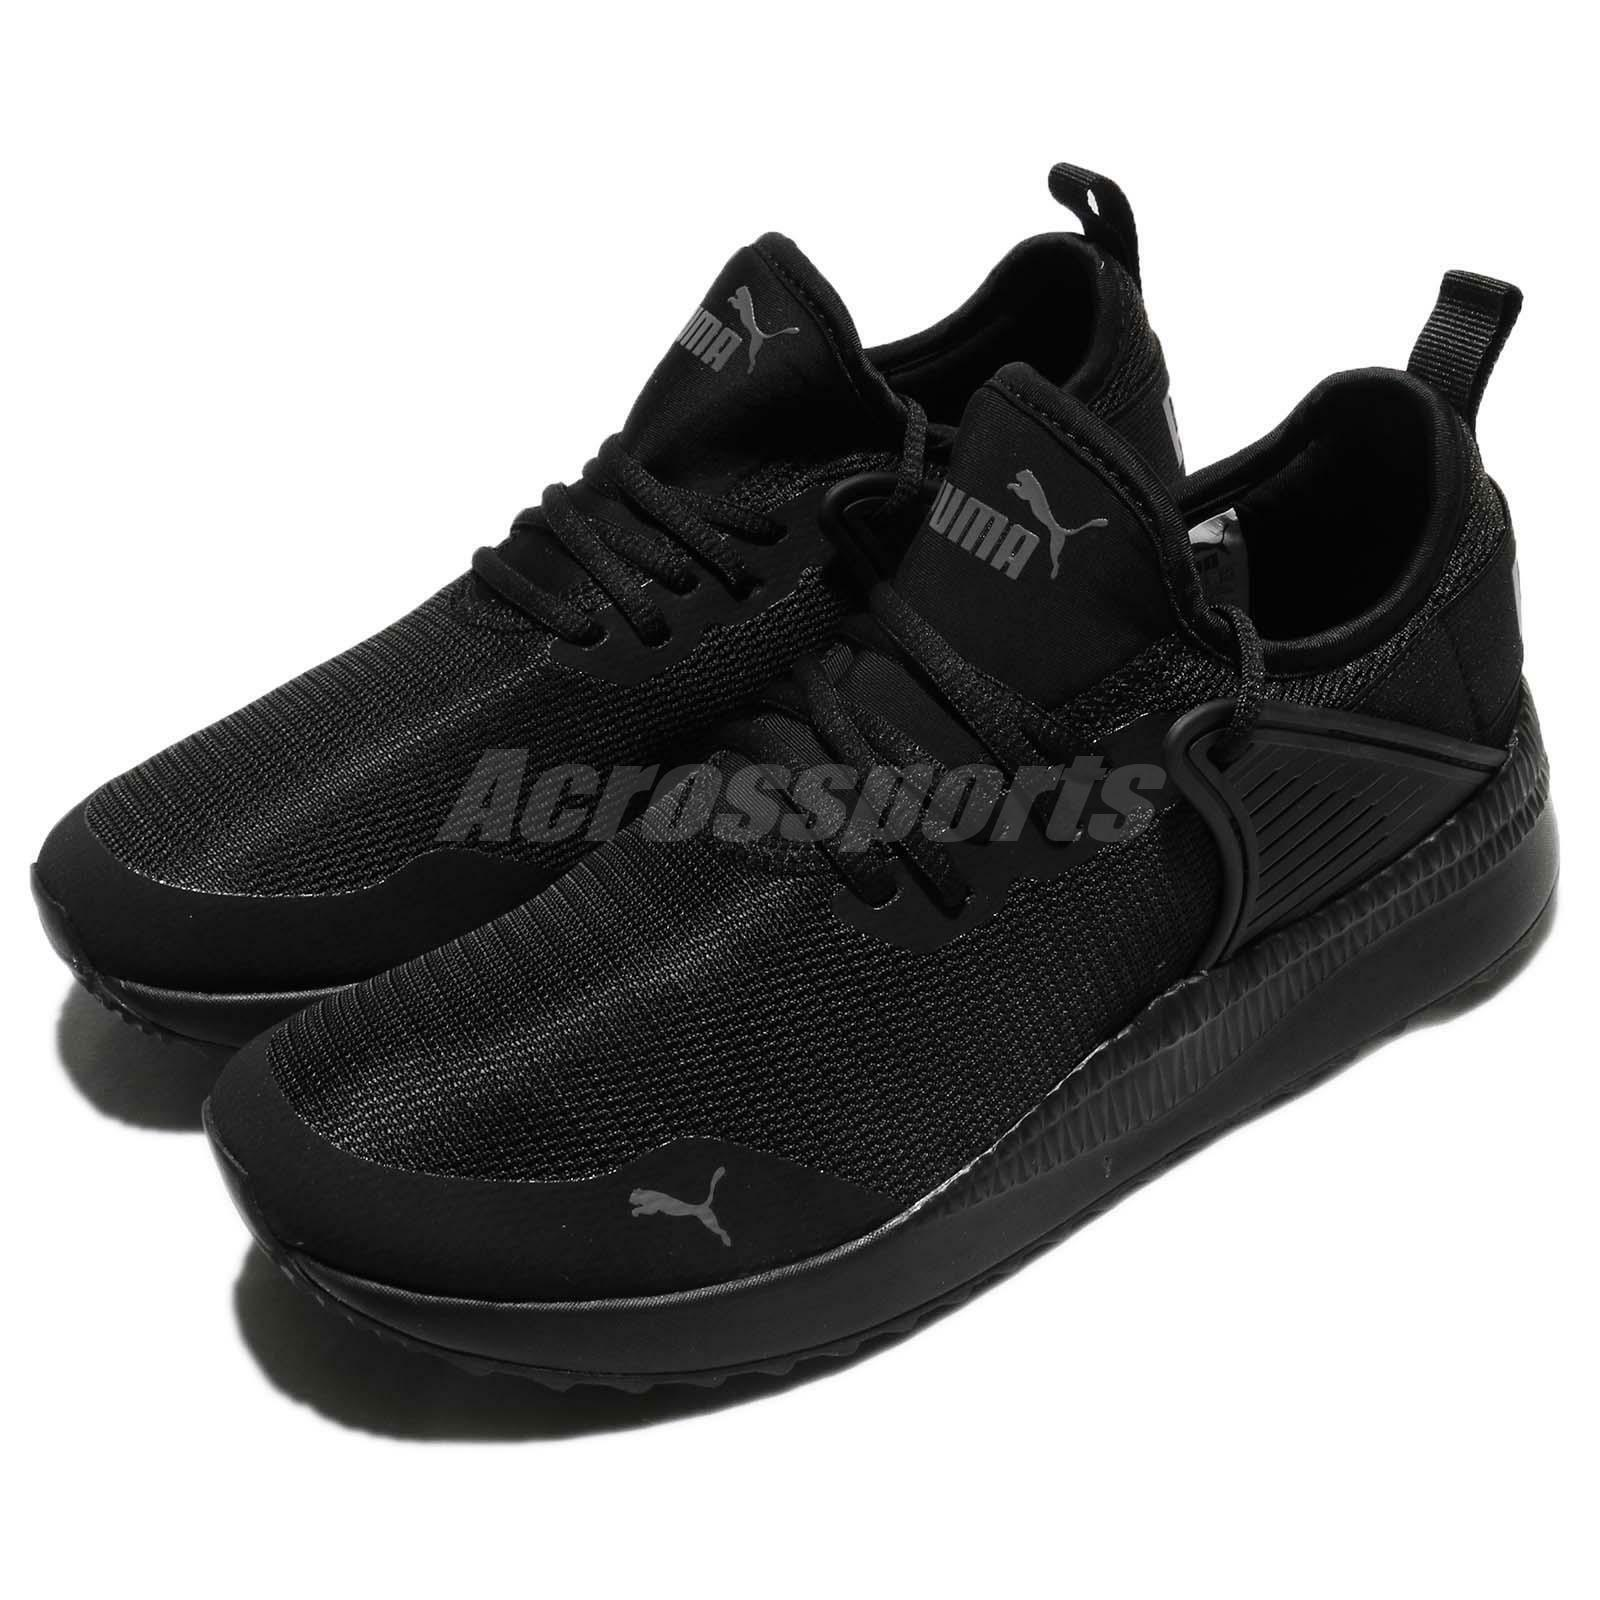 251bf99726 Puma Pacer Next Cage Triple Black Men Running Shoes Sneakers 365284-01